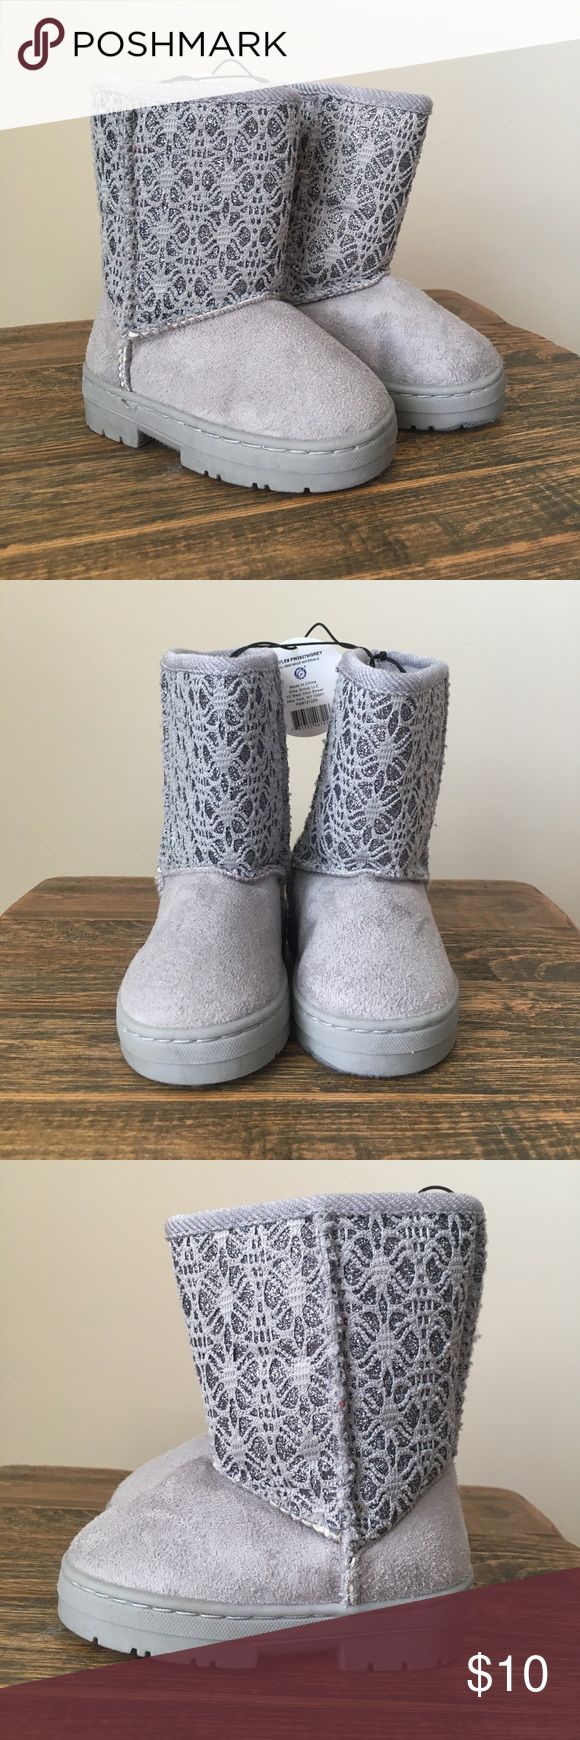 NWT toddler winter boots - grey, lace, sparkles Adorable and never worn, these toddler girl winter boots are grey with lace and sparkle accents. All man made materials. Size 5. chatties Shoes Boots